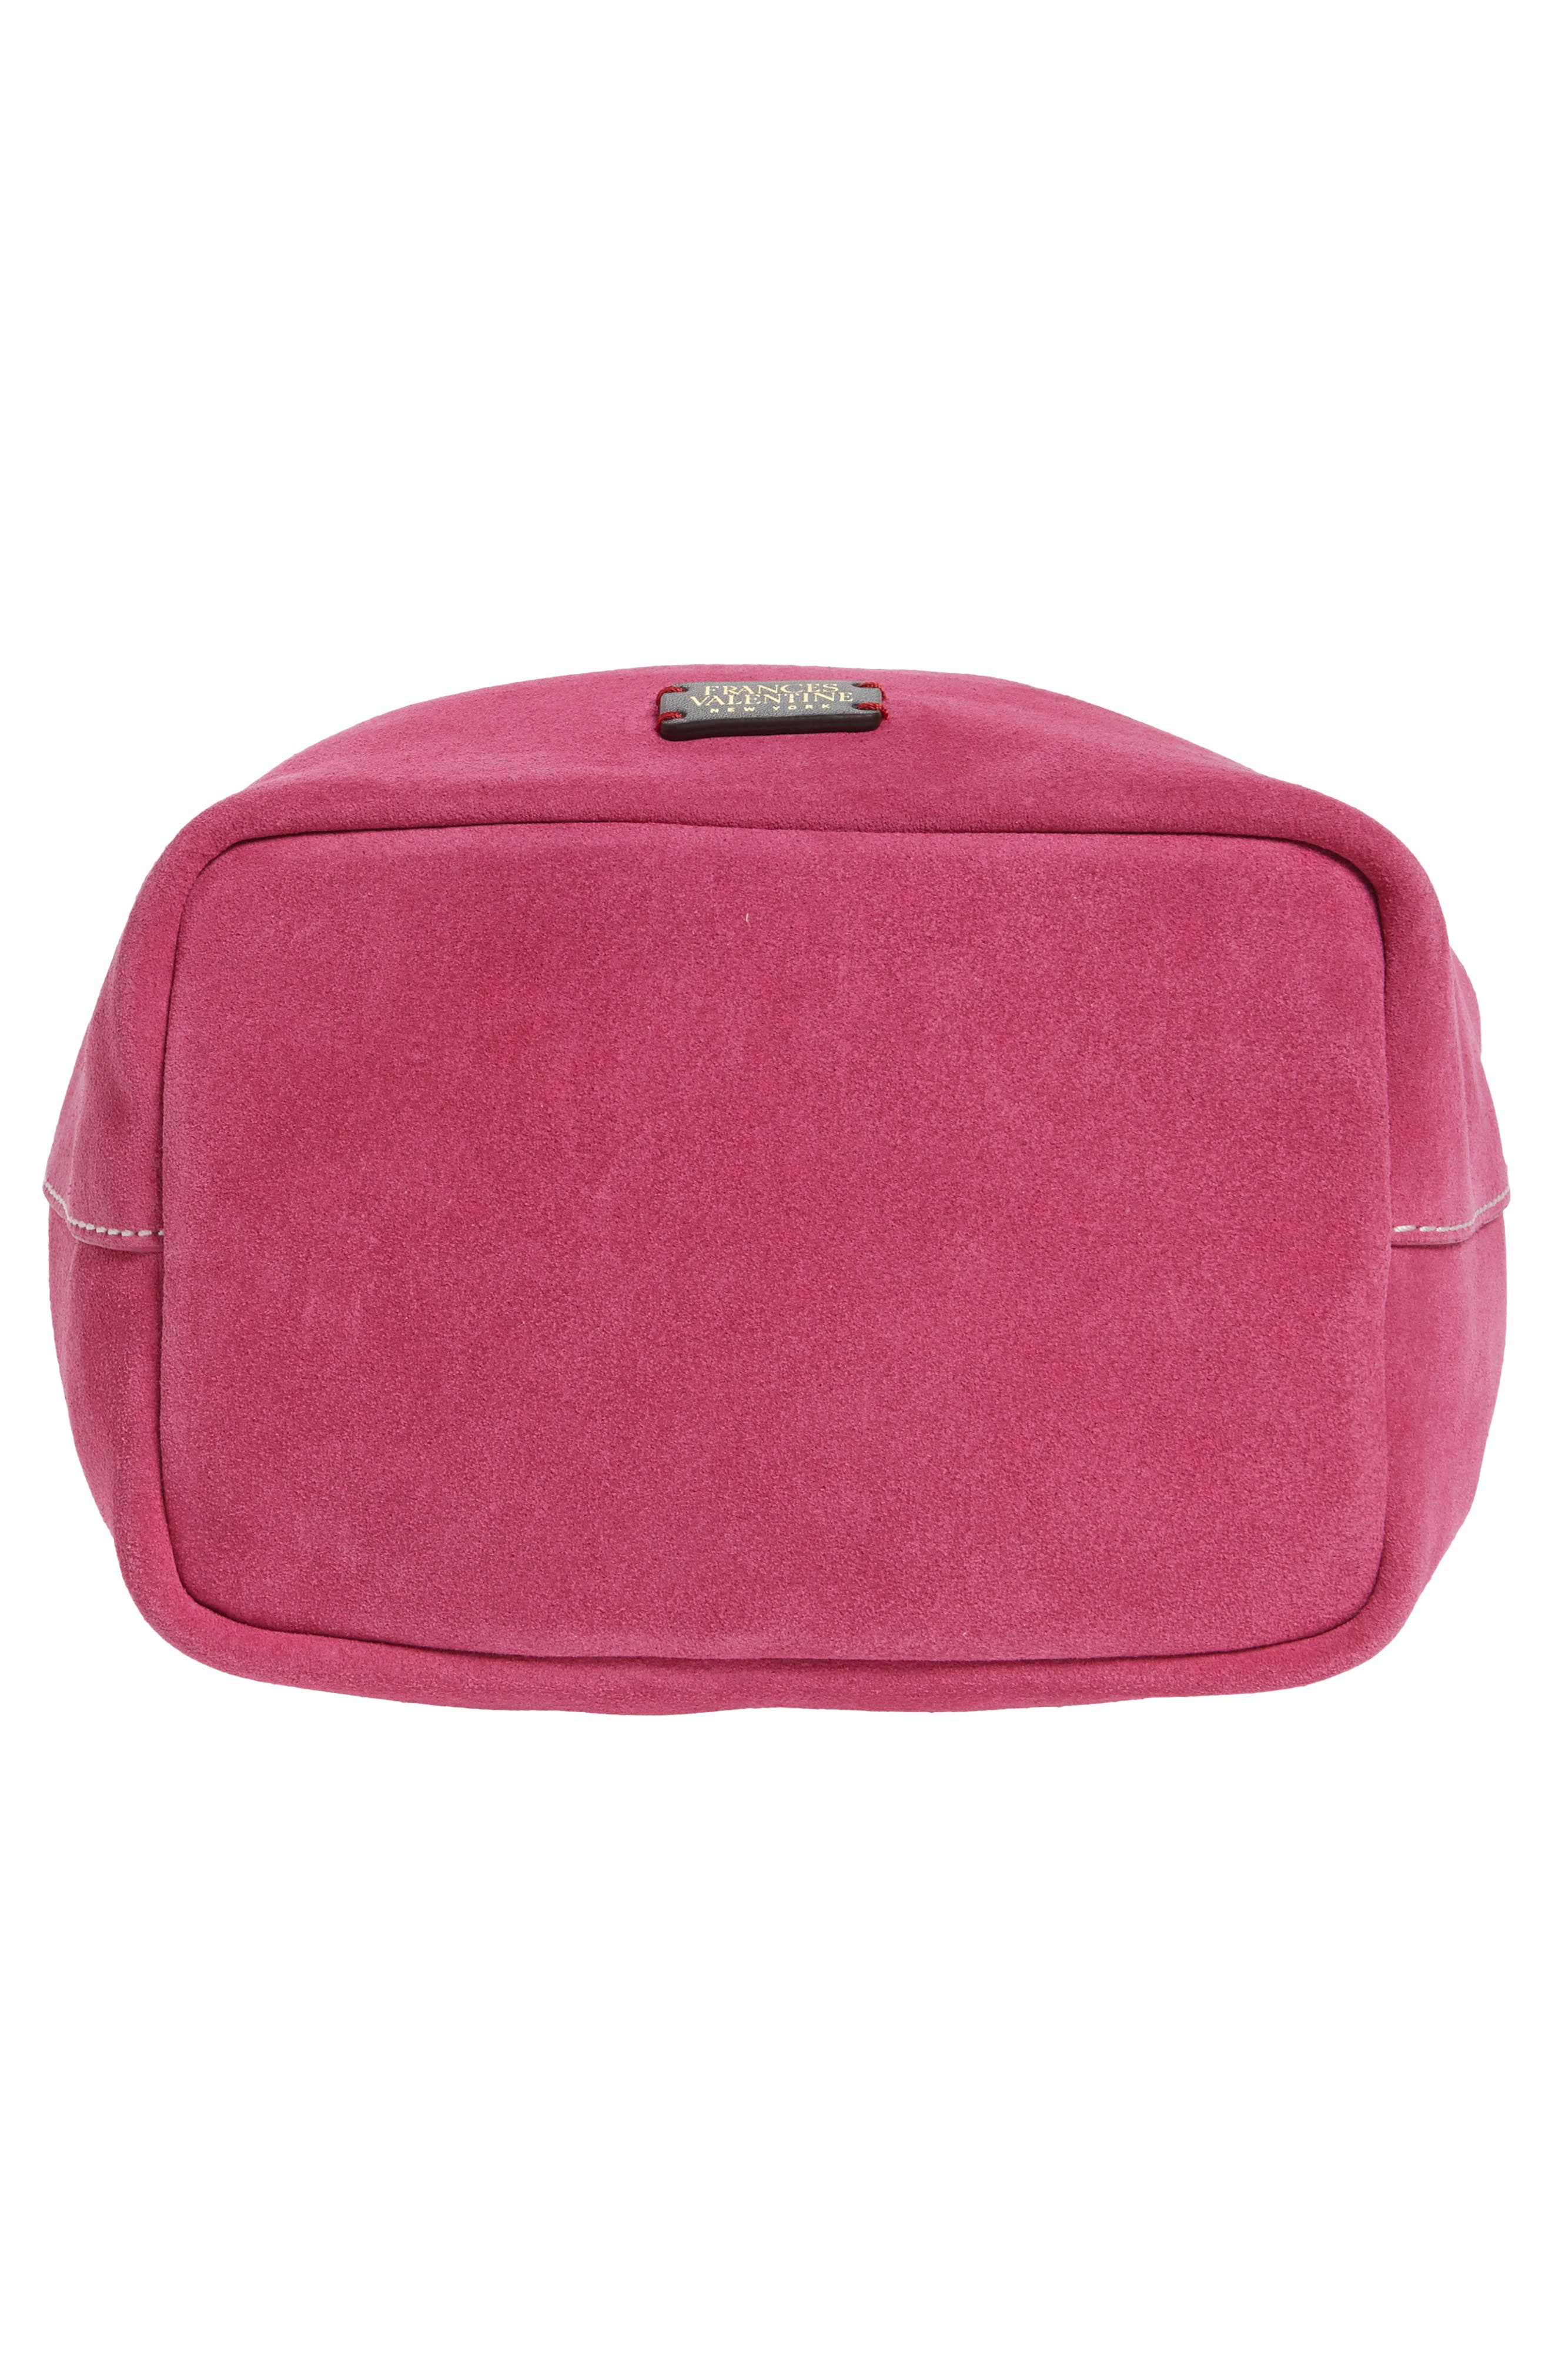 Ann Small Suede Bucket,                             Alternate thumbnail 6, color,                             Pink